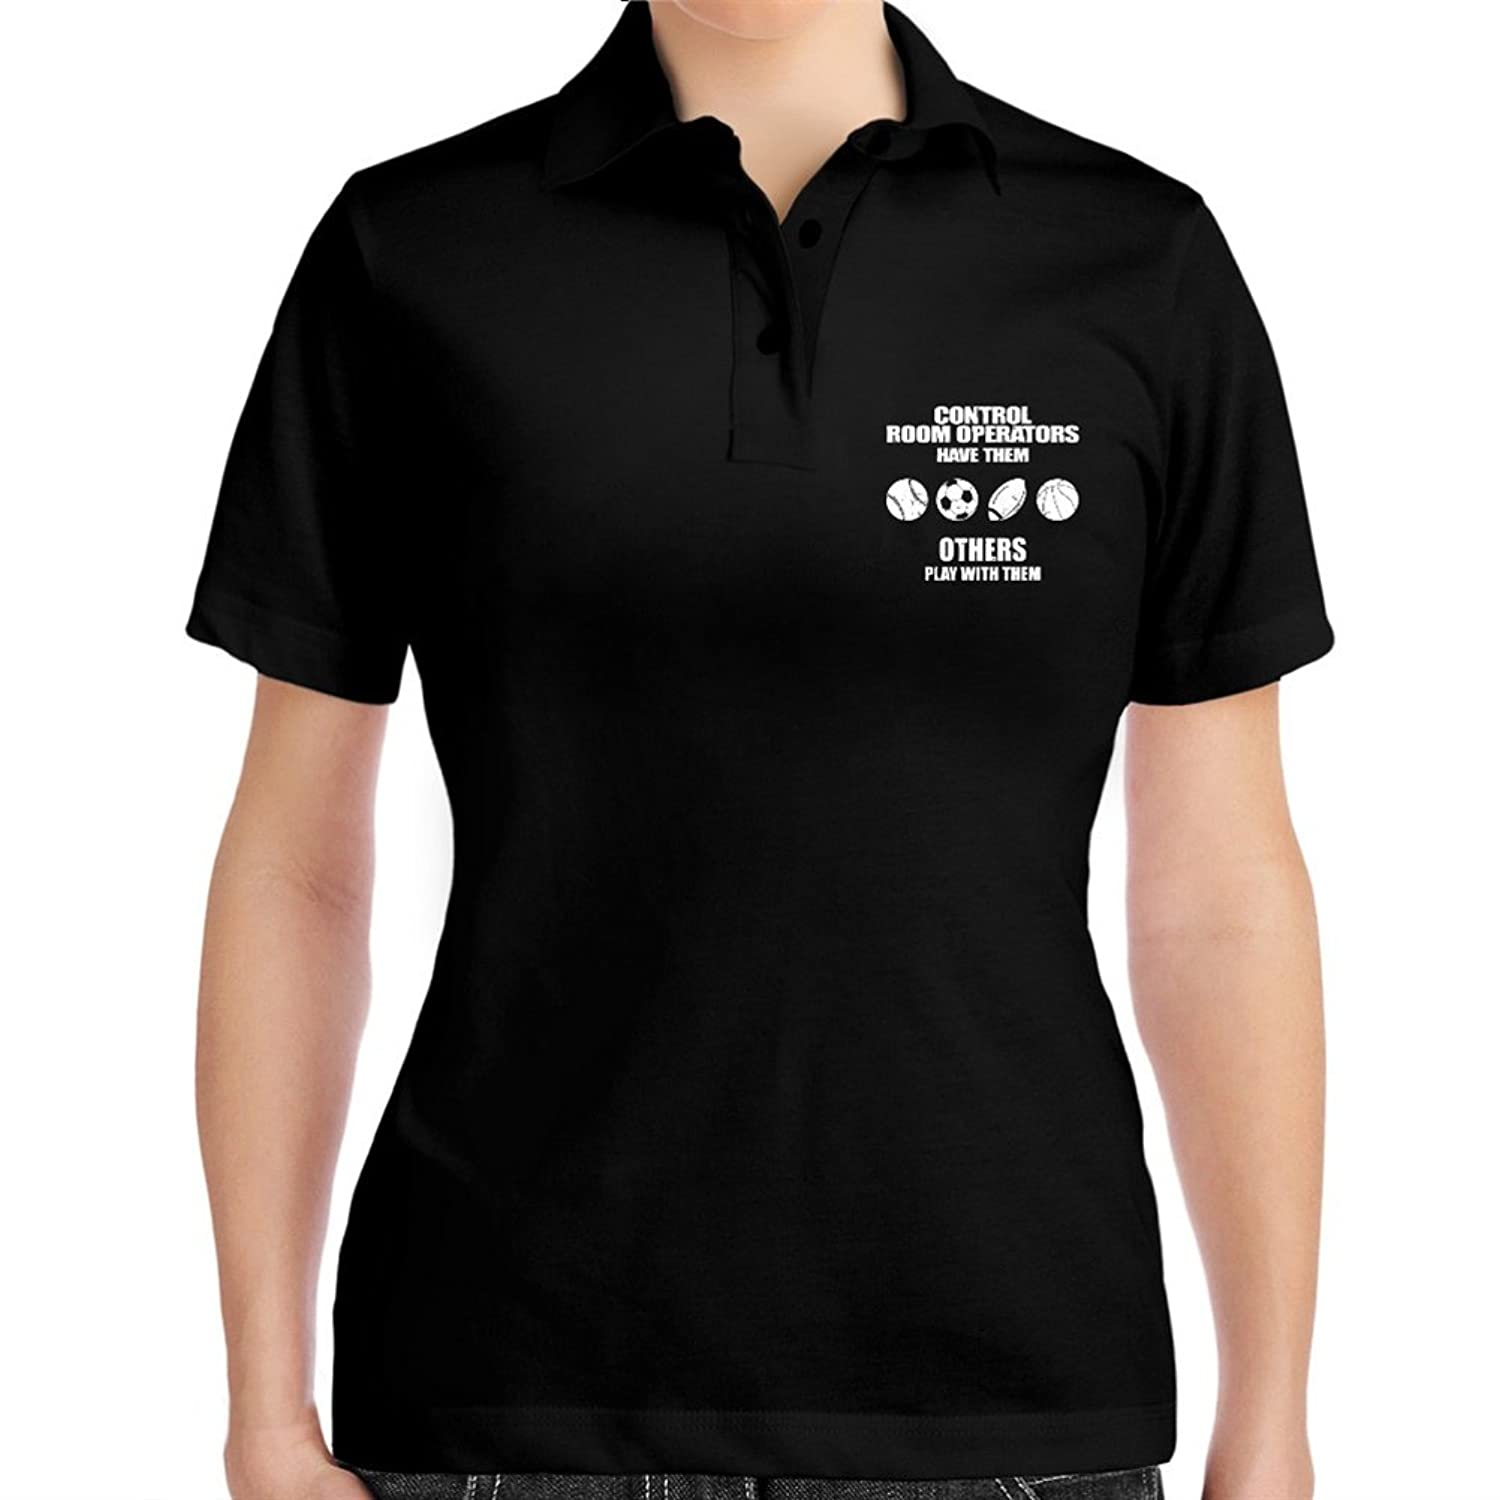 Control Room Operator have them others play with them Women Polo Shirt